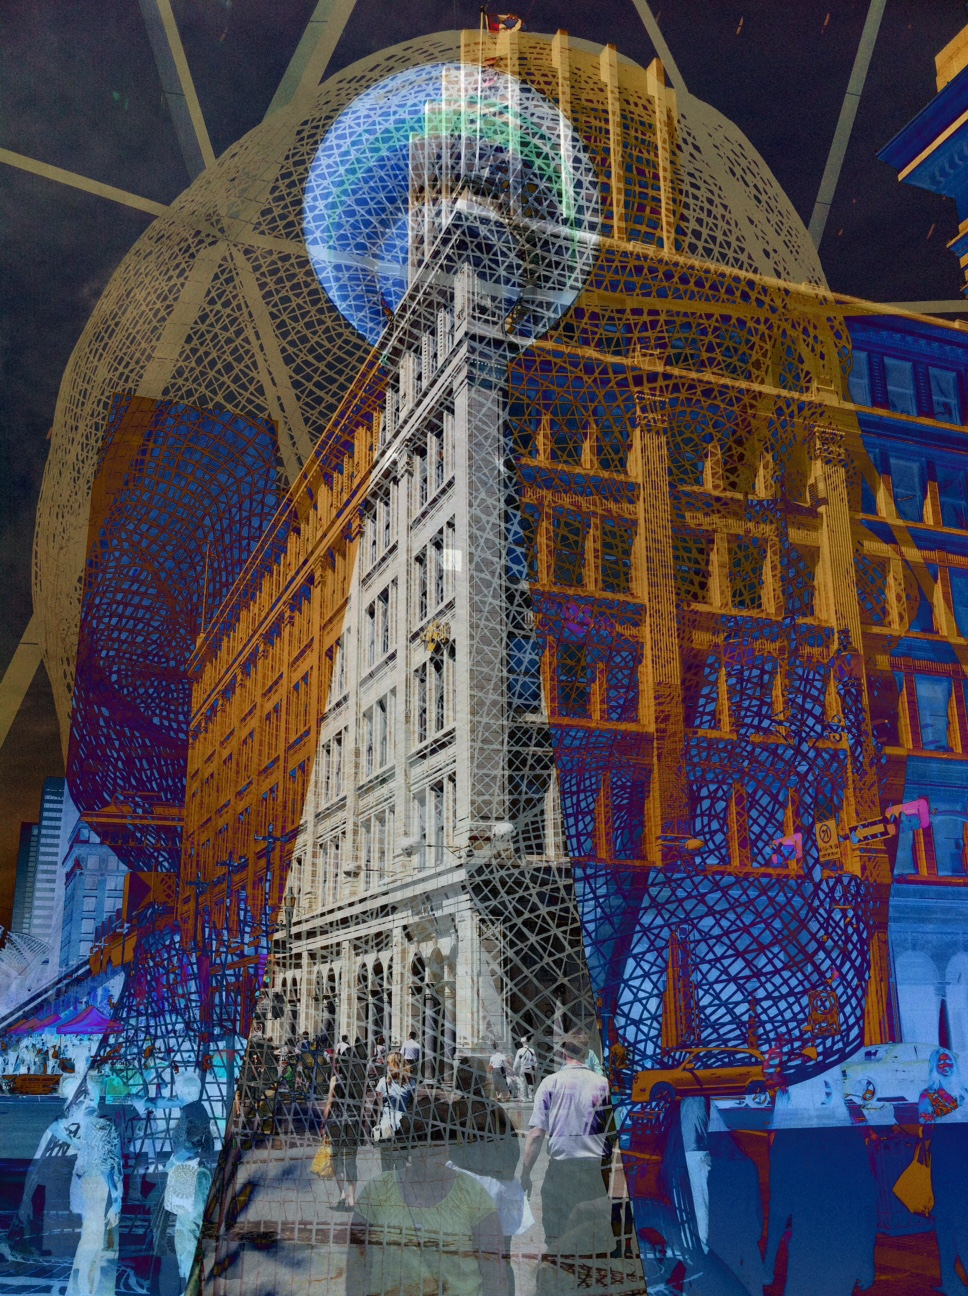 Calgary Tower, Stephen Avenue, the historic Hudson Bay department store and Wonderland all mesh together in this image.